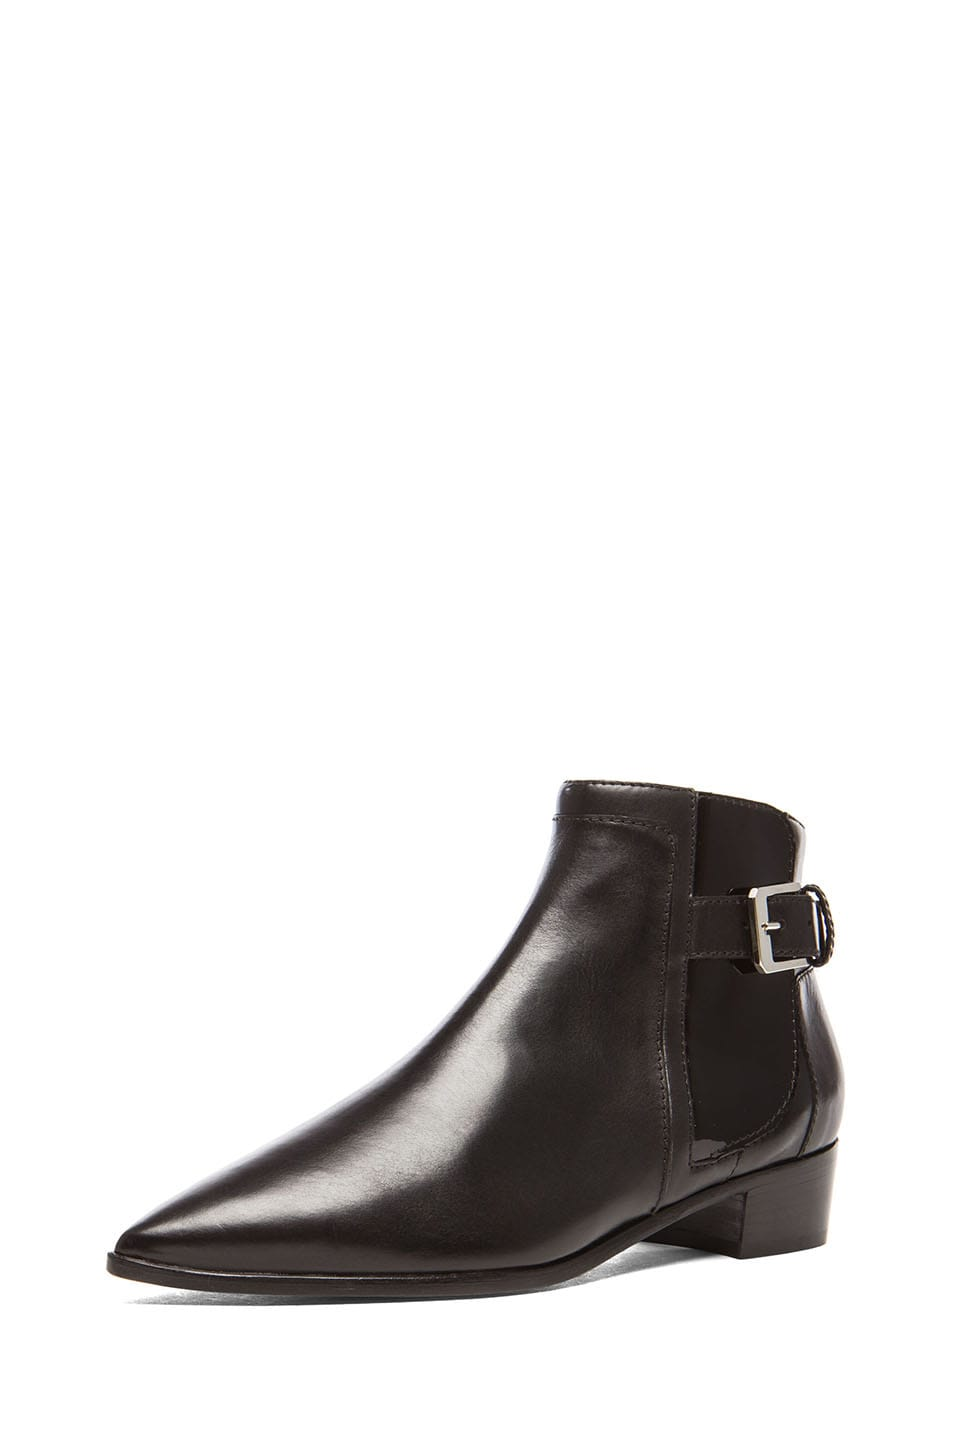 Image 2 of Laurence Dacade Ed Calfskin Leather Booties in Black